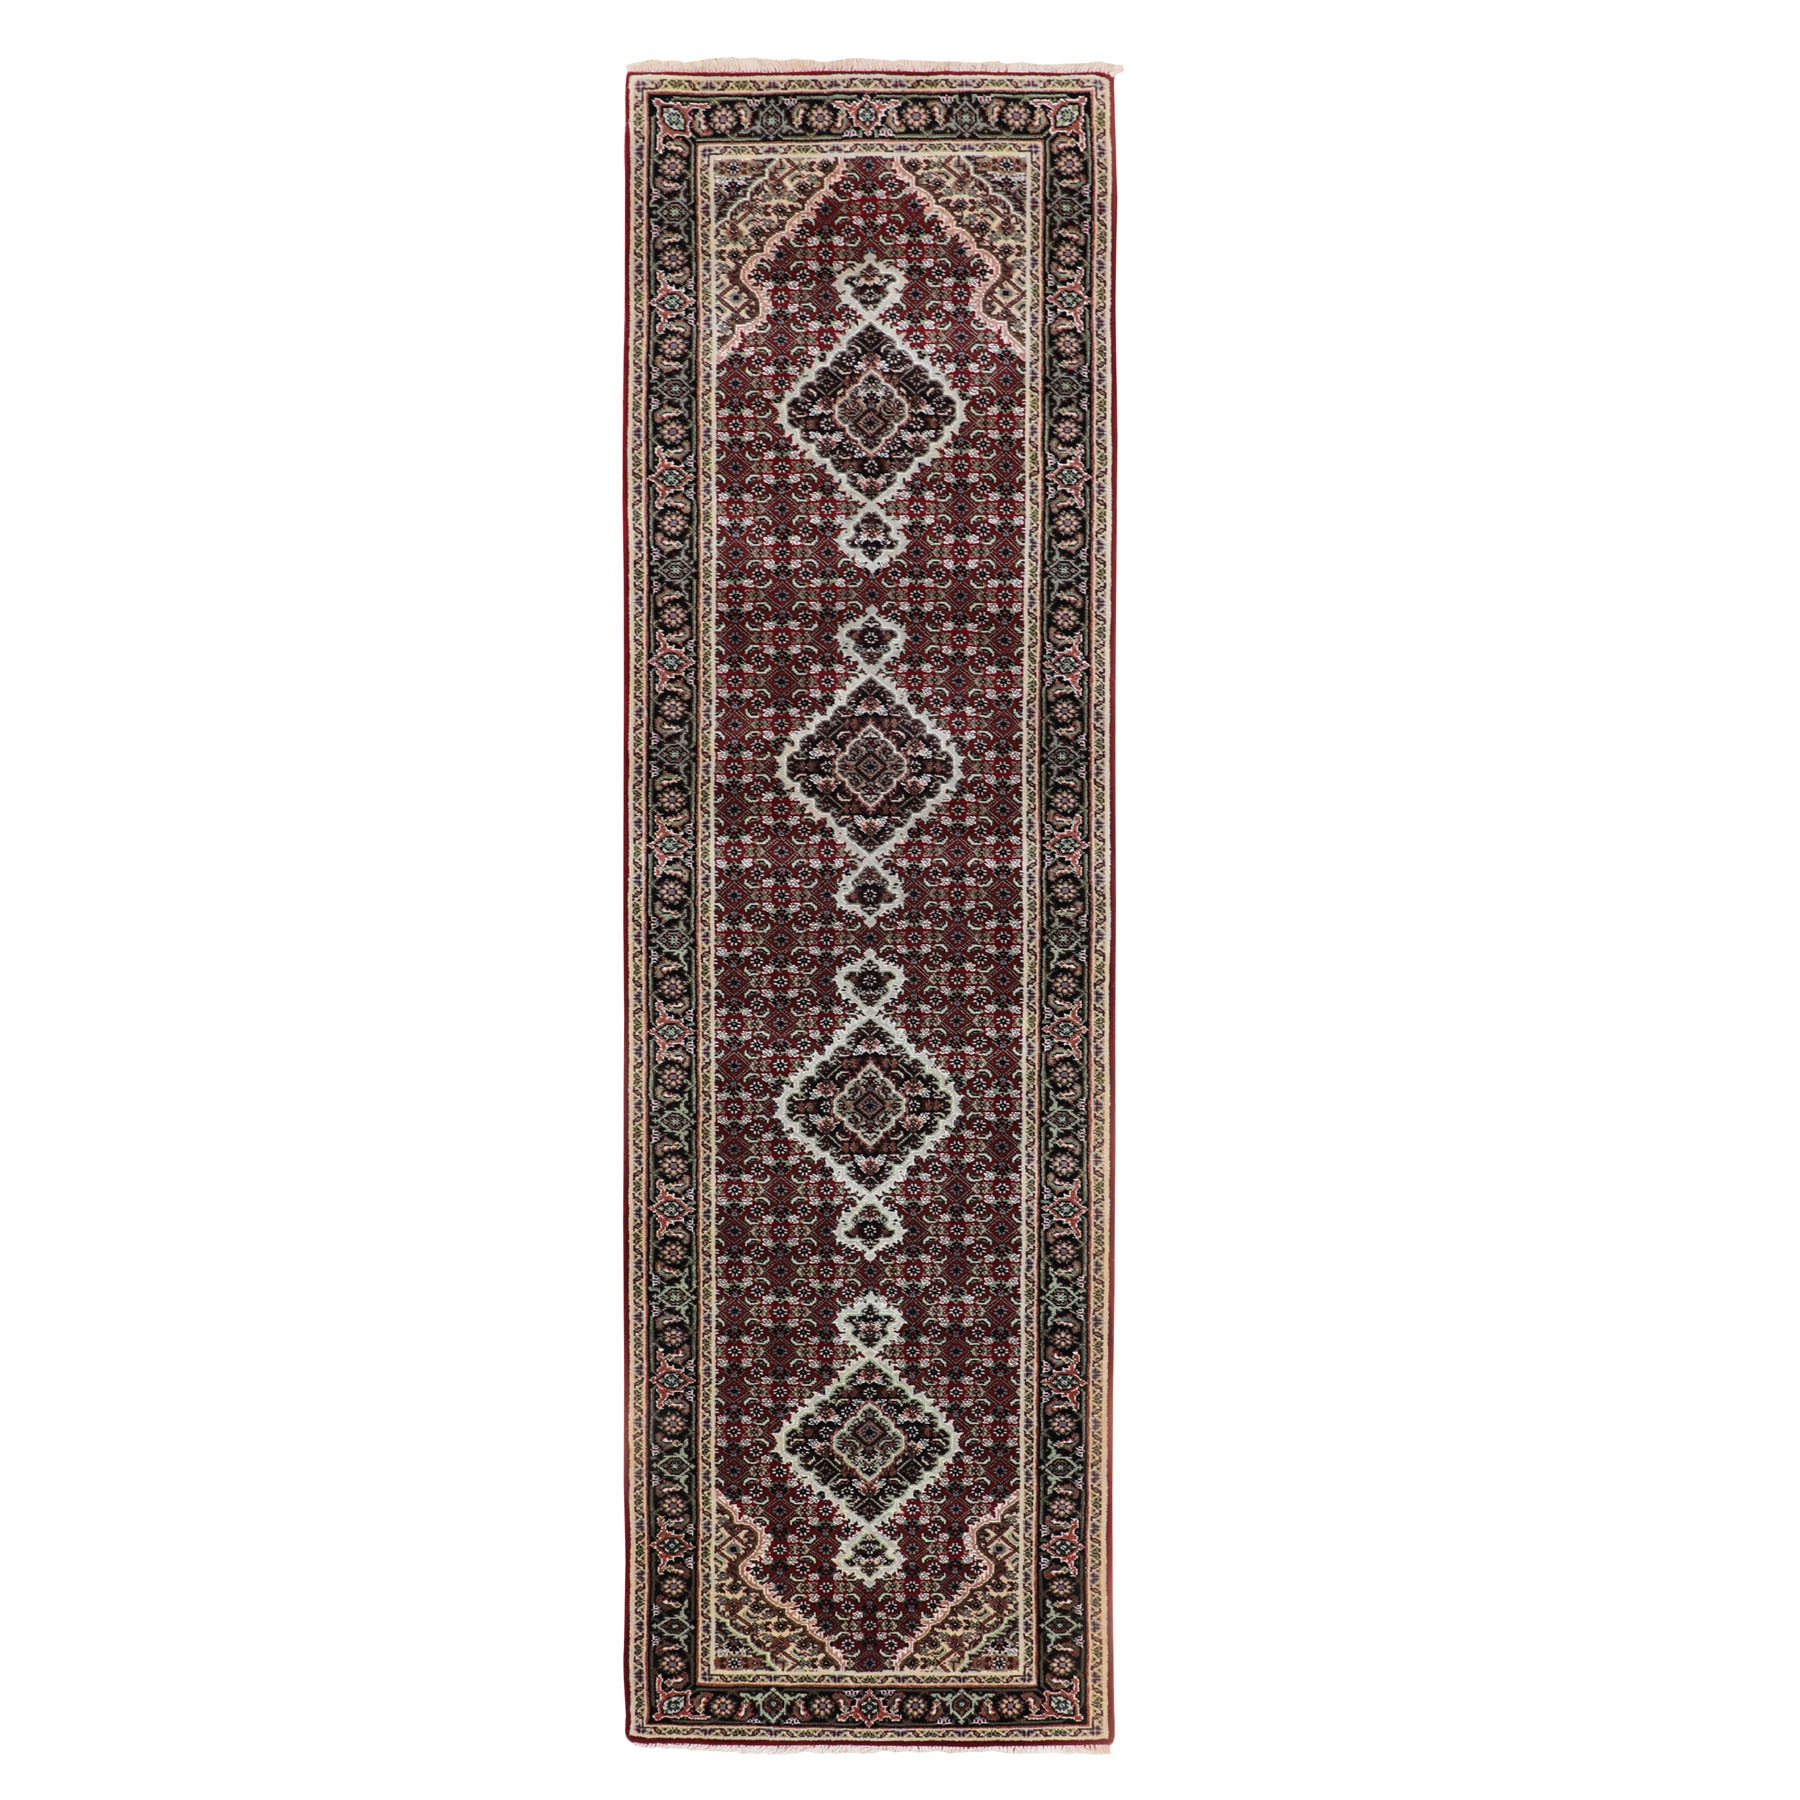 Pirniakan Collection Hand Knotted Red Rug No: 01116640